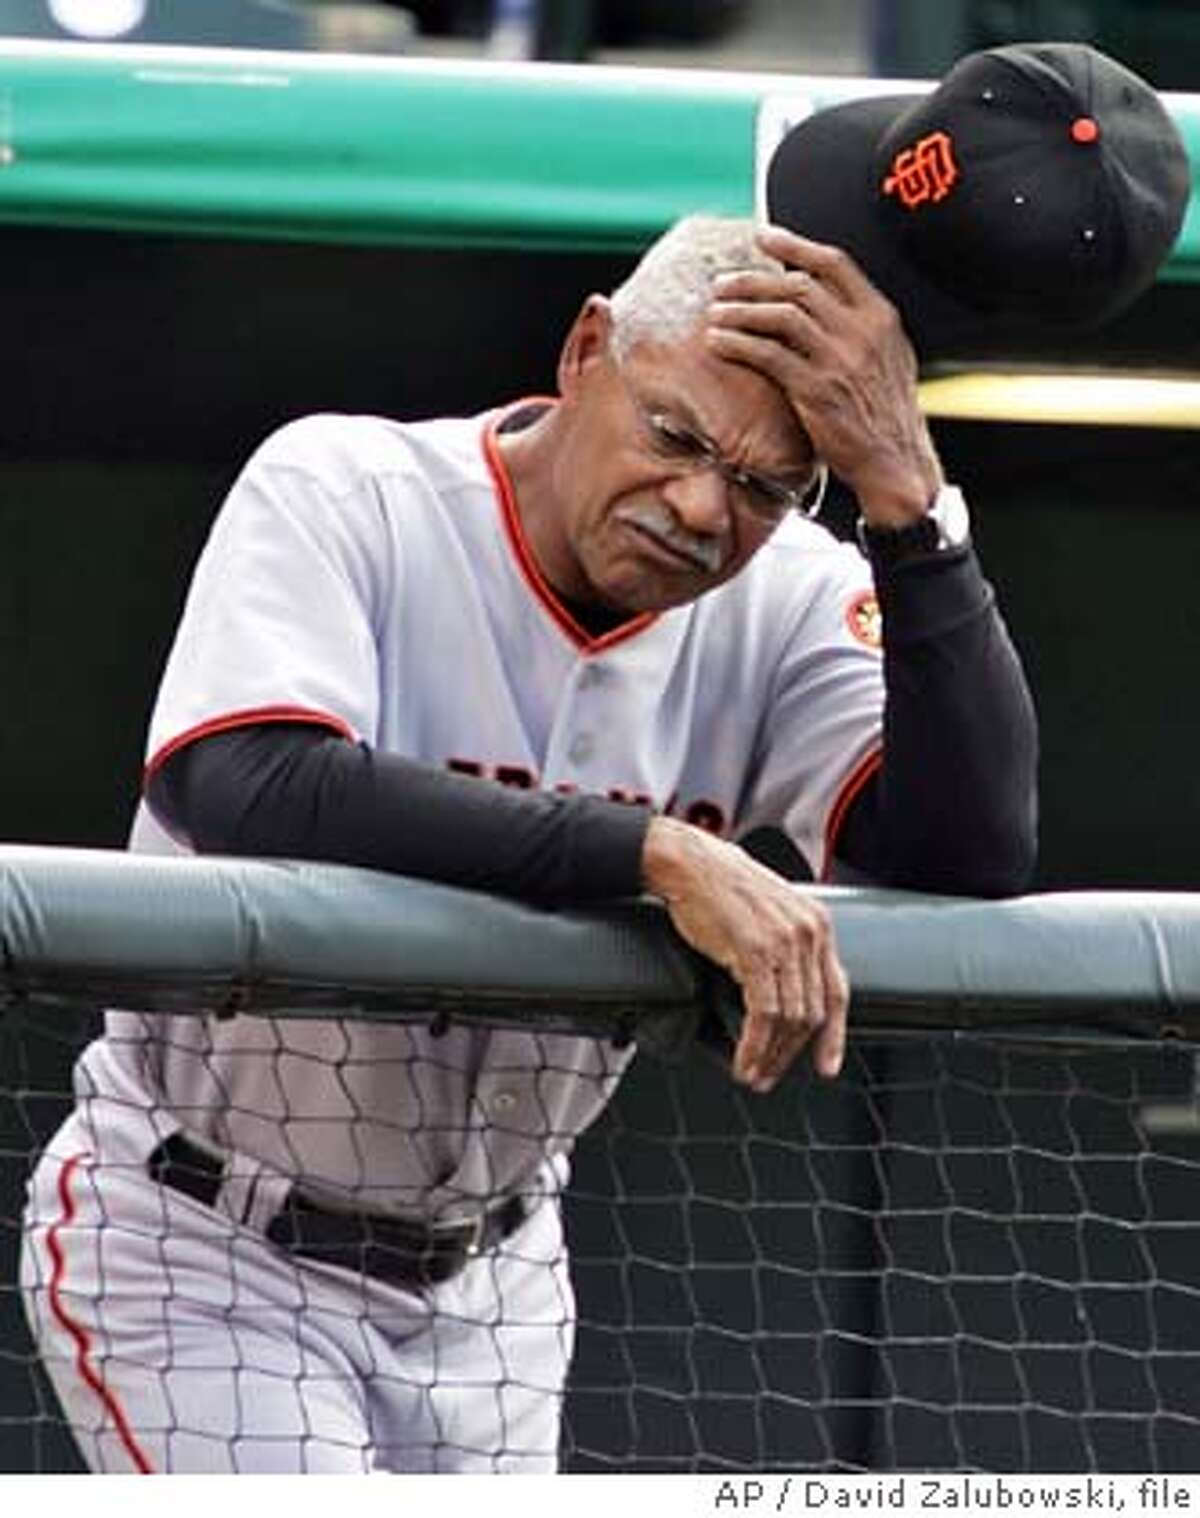 ** FILE ** San Francisco Giants manager Felipe Alou holds his head as he leans over the rail while looking on as pitcher Brad Hennessey falls behind in the count to Colorado Rockies' Todd Helton in a baseball game in Denver on May 18, 2005. Alou plans to fly home to Florida and then the Dominican Republic as soon as the season ends, even if his future with the Giants has yet to be resolved. (AP Photo/David Zalubowski, file)